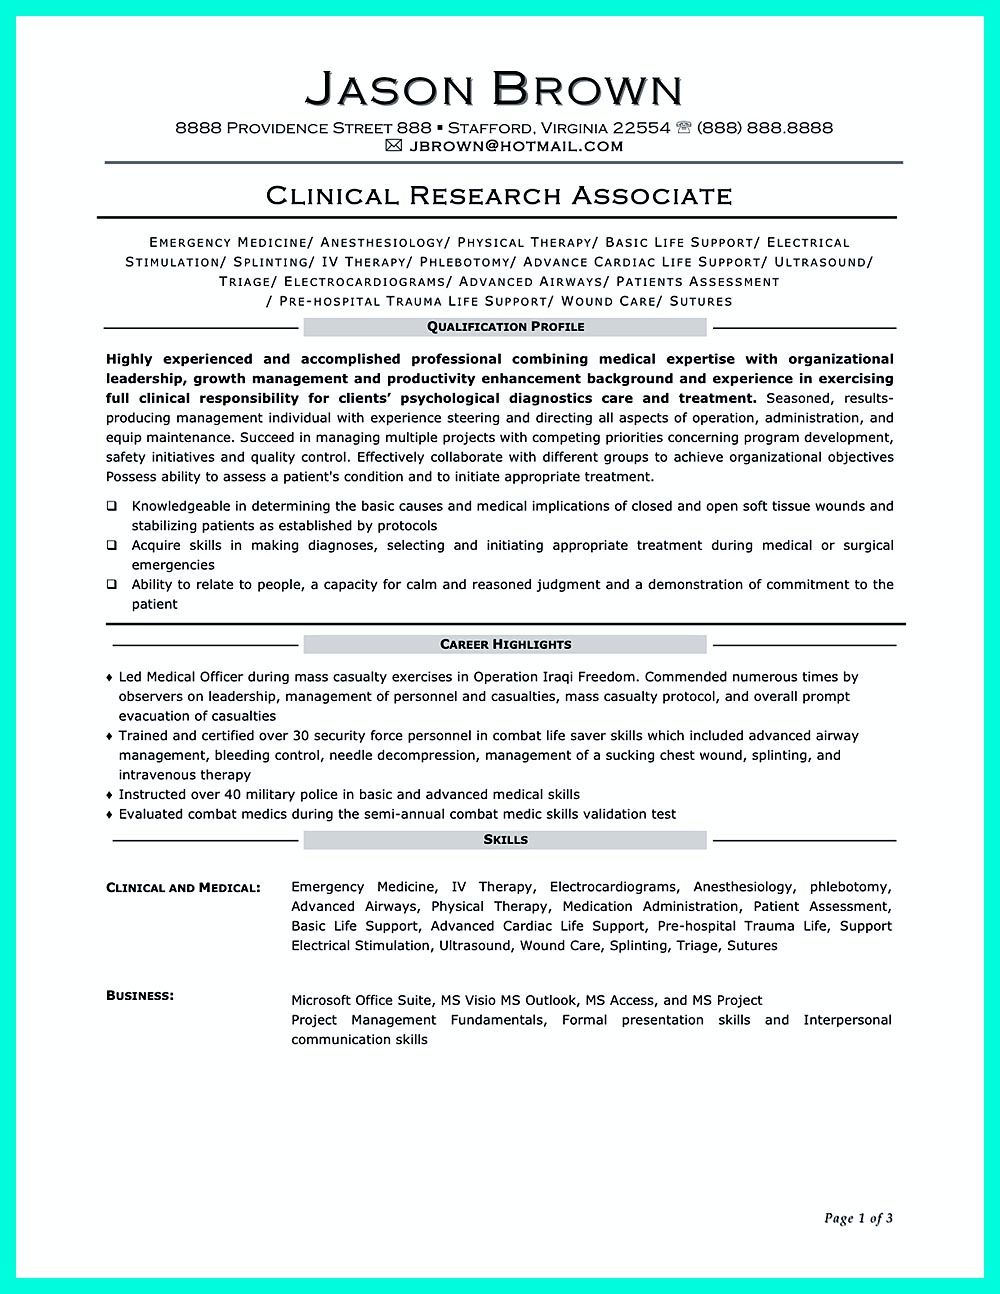 Sample Resume Objectives Clinical Research Associate Resume Objectives Are Needed To